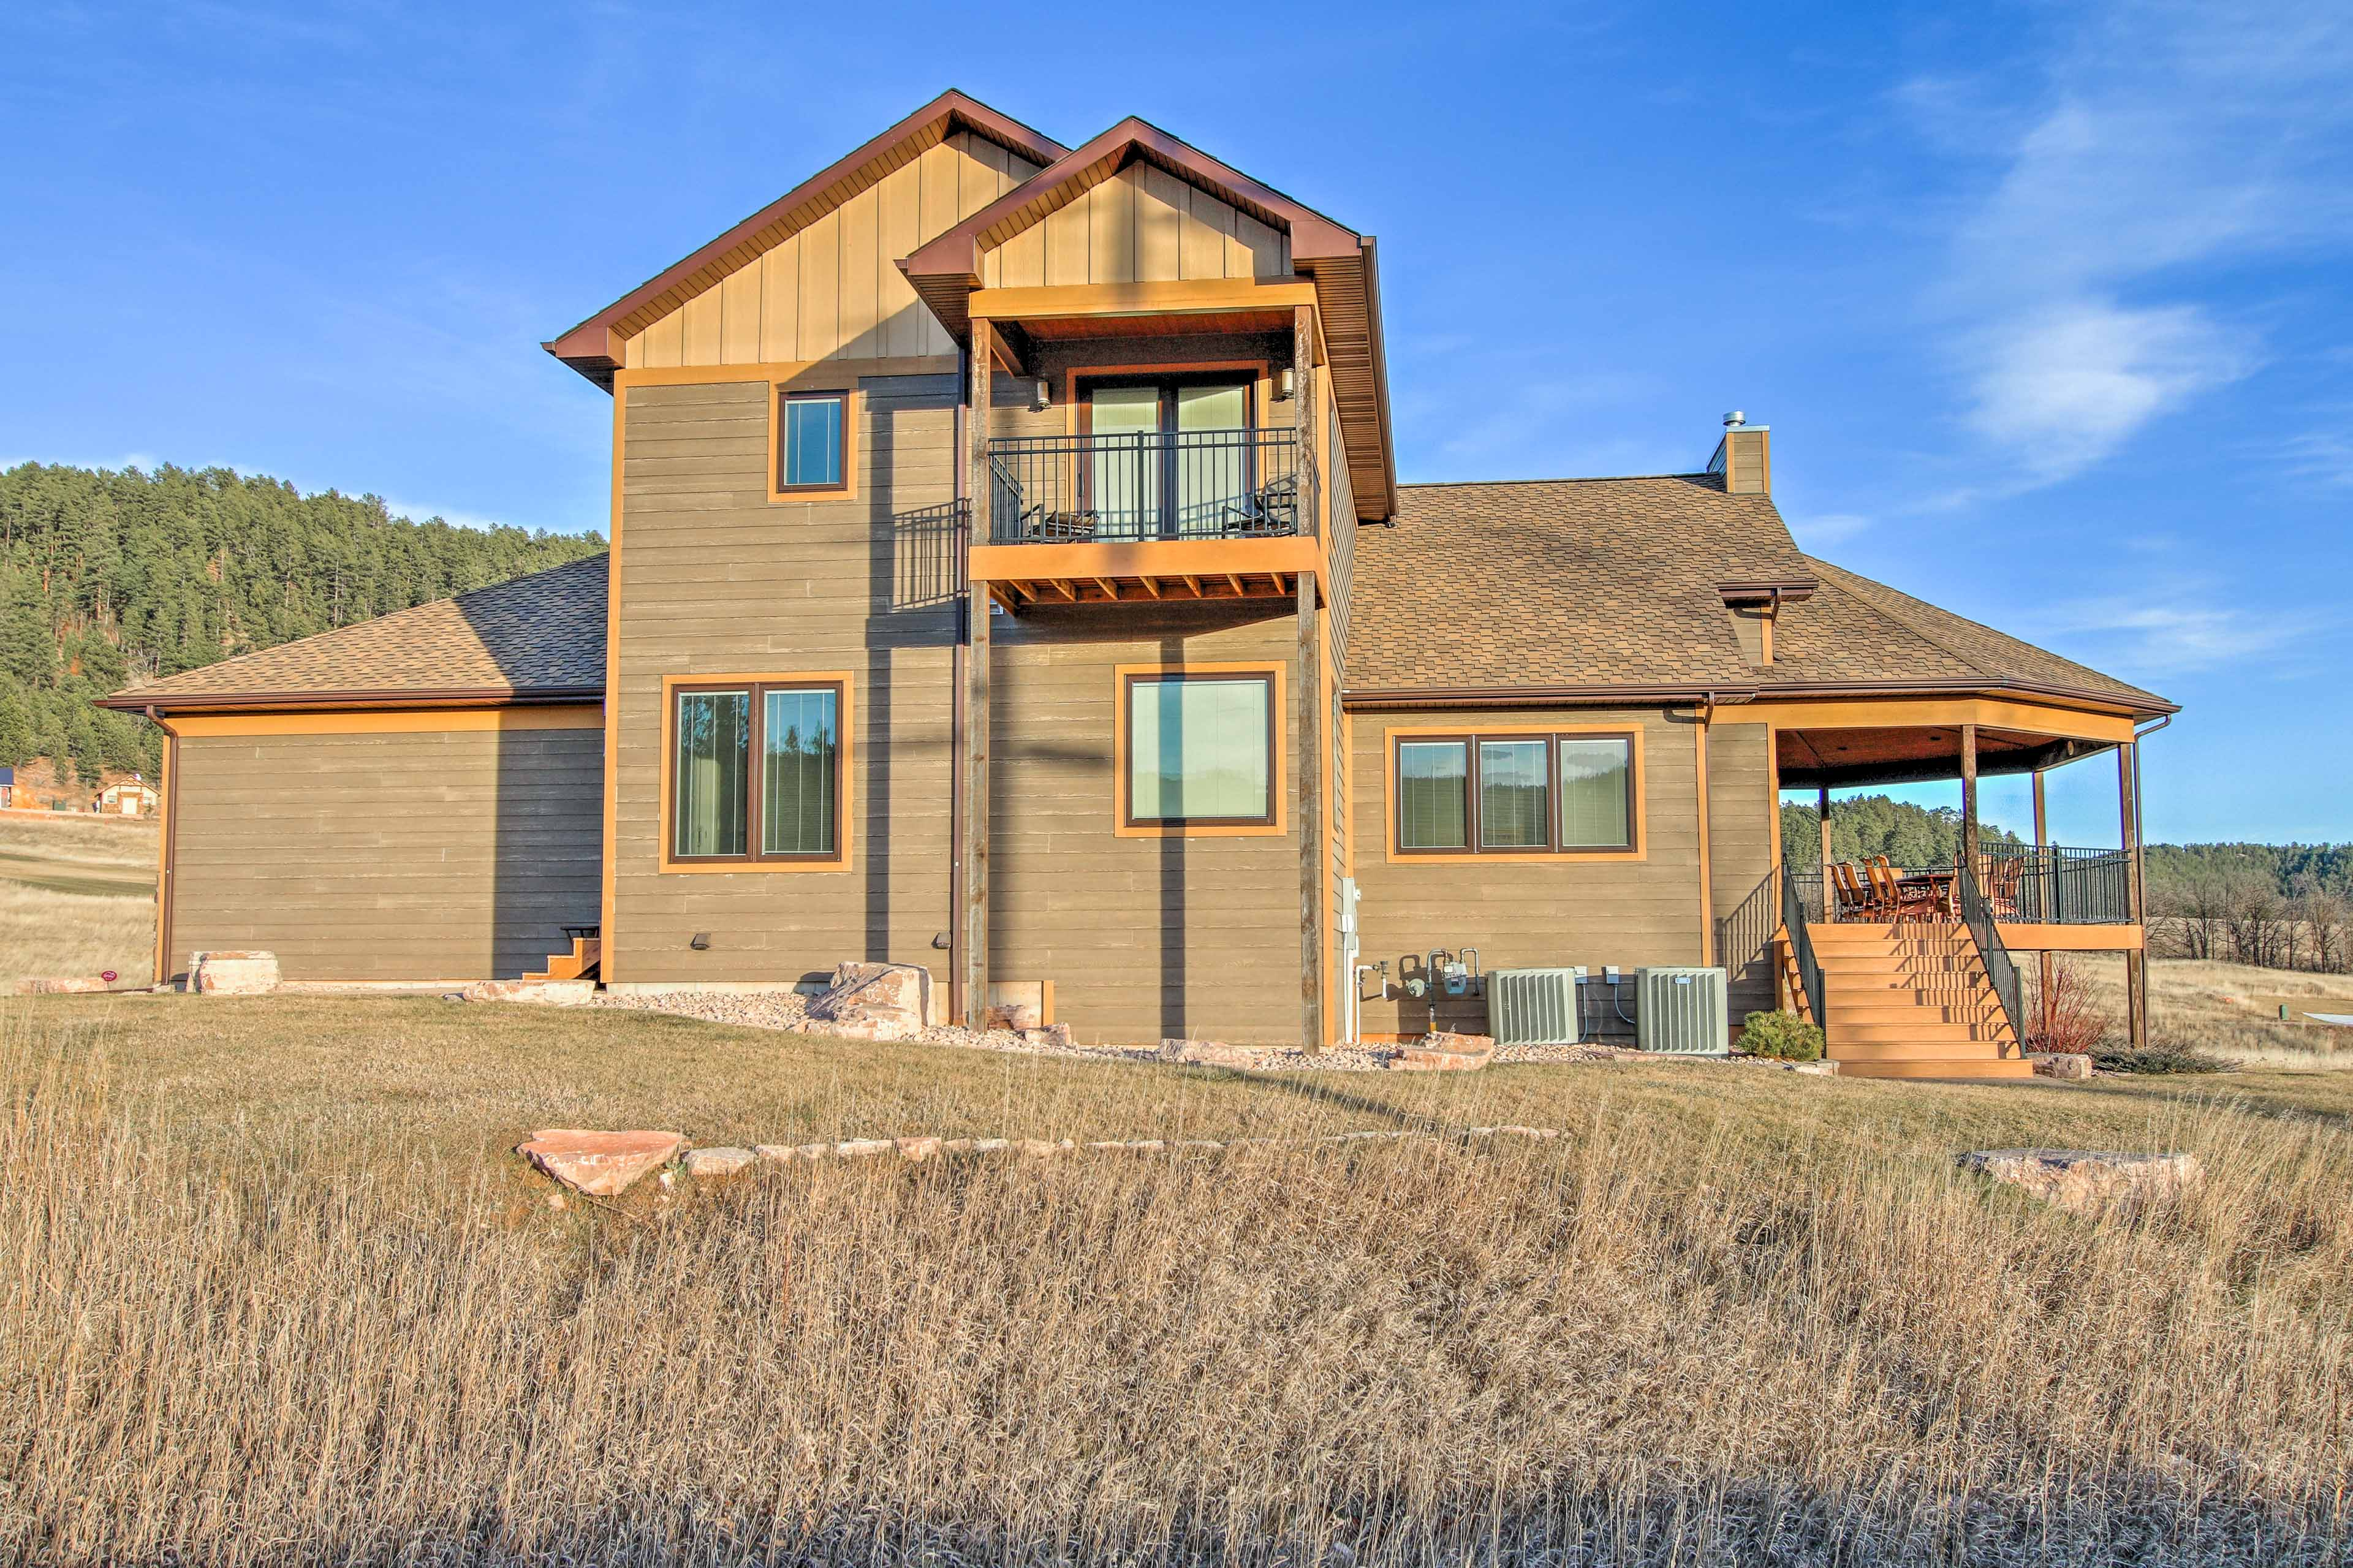 With unbeatable views outside and a beautiful indoor space, this house is soon to be your favorite stop in Sturgis!